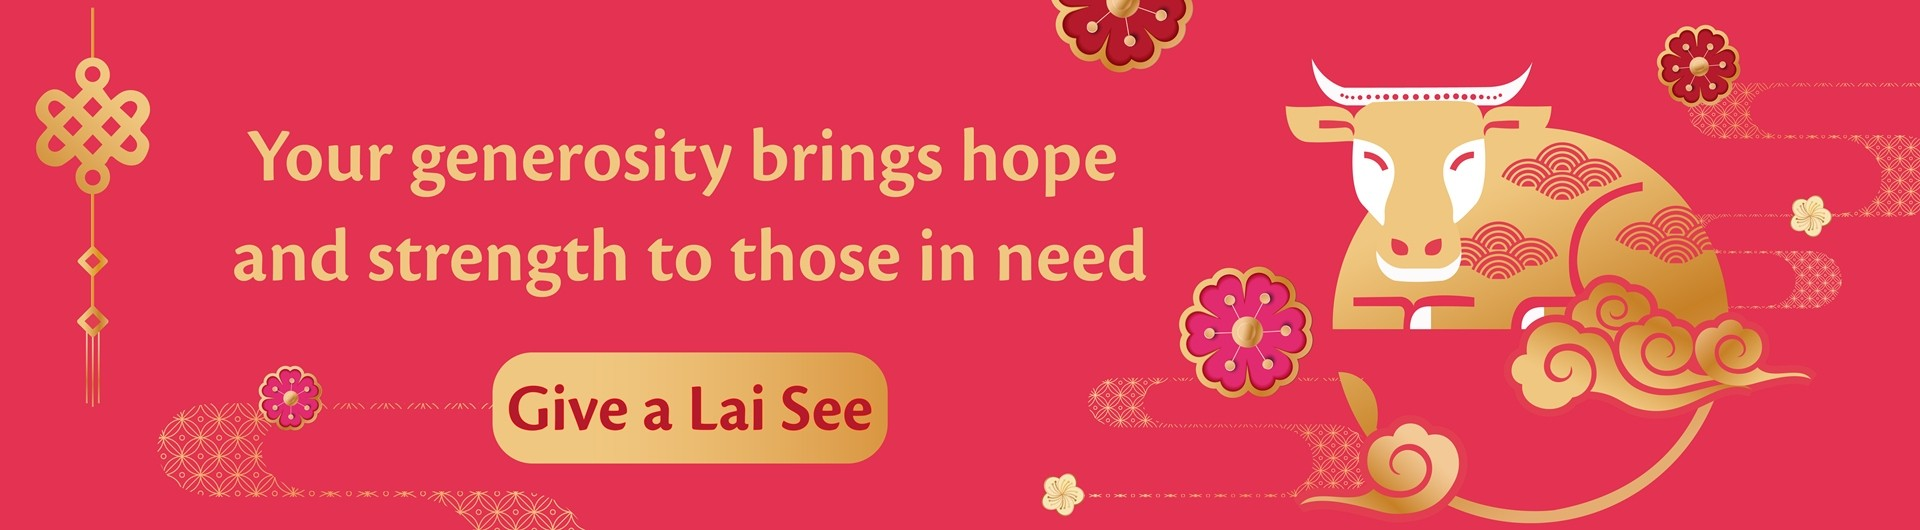 CNY appeal